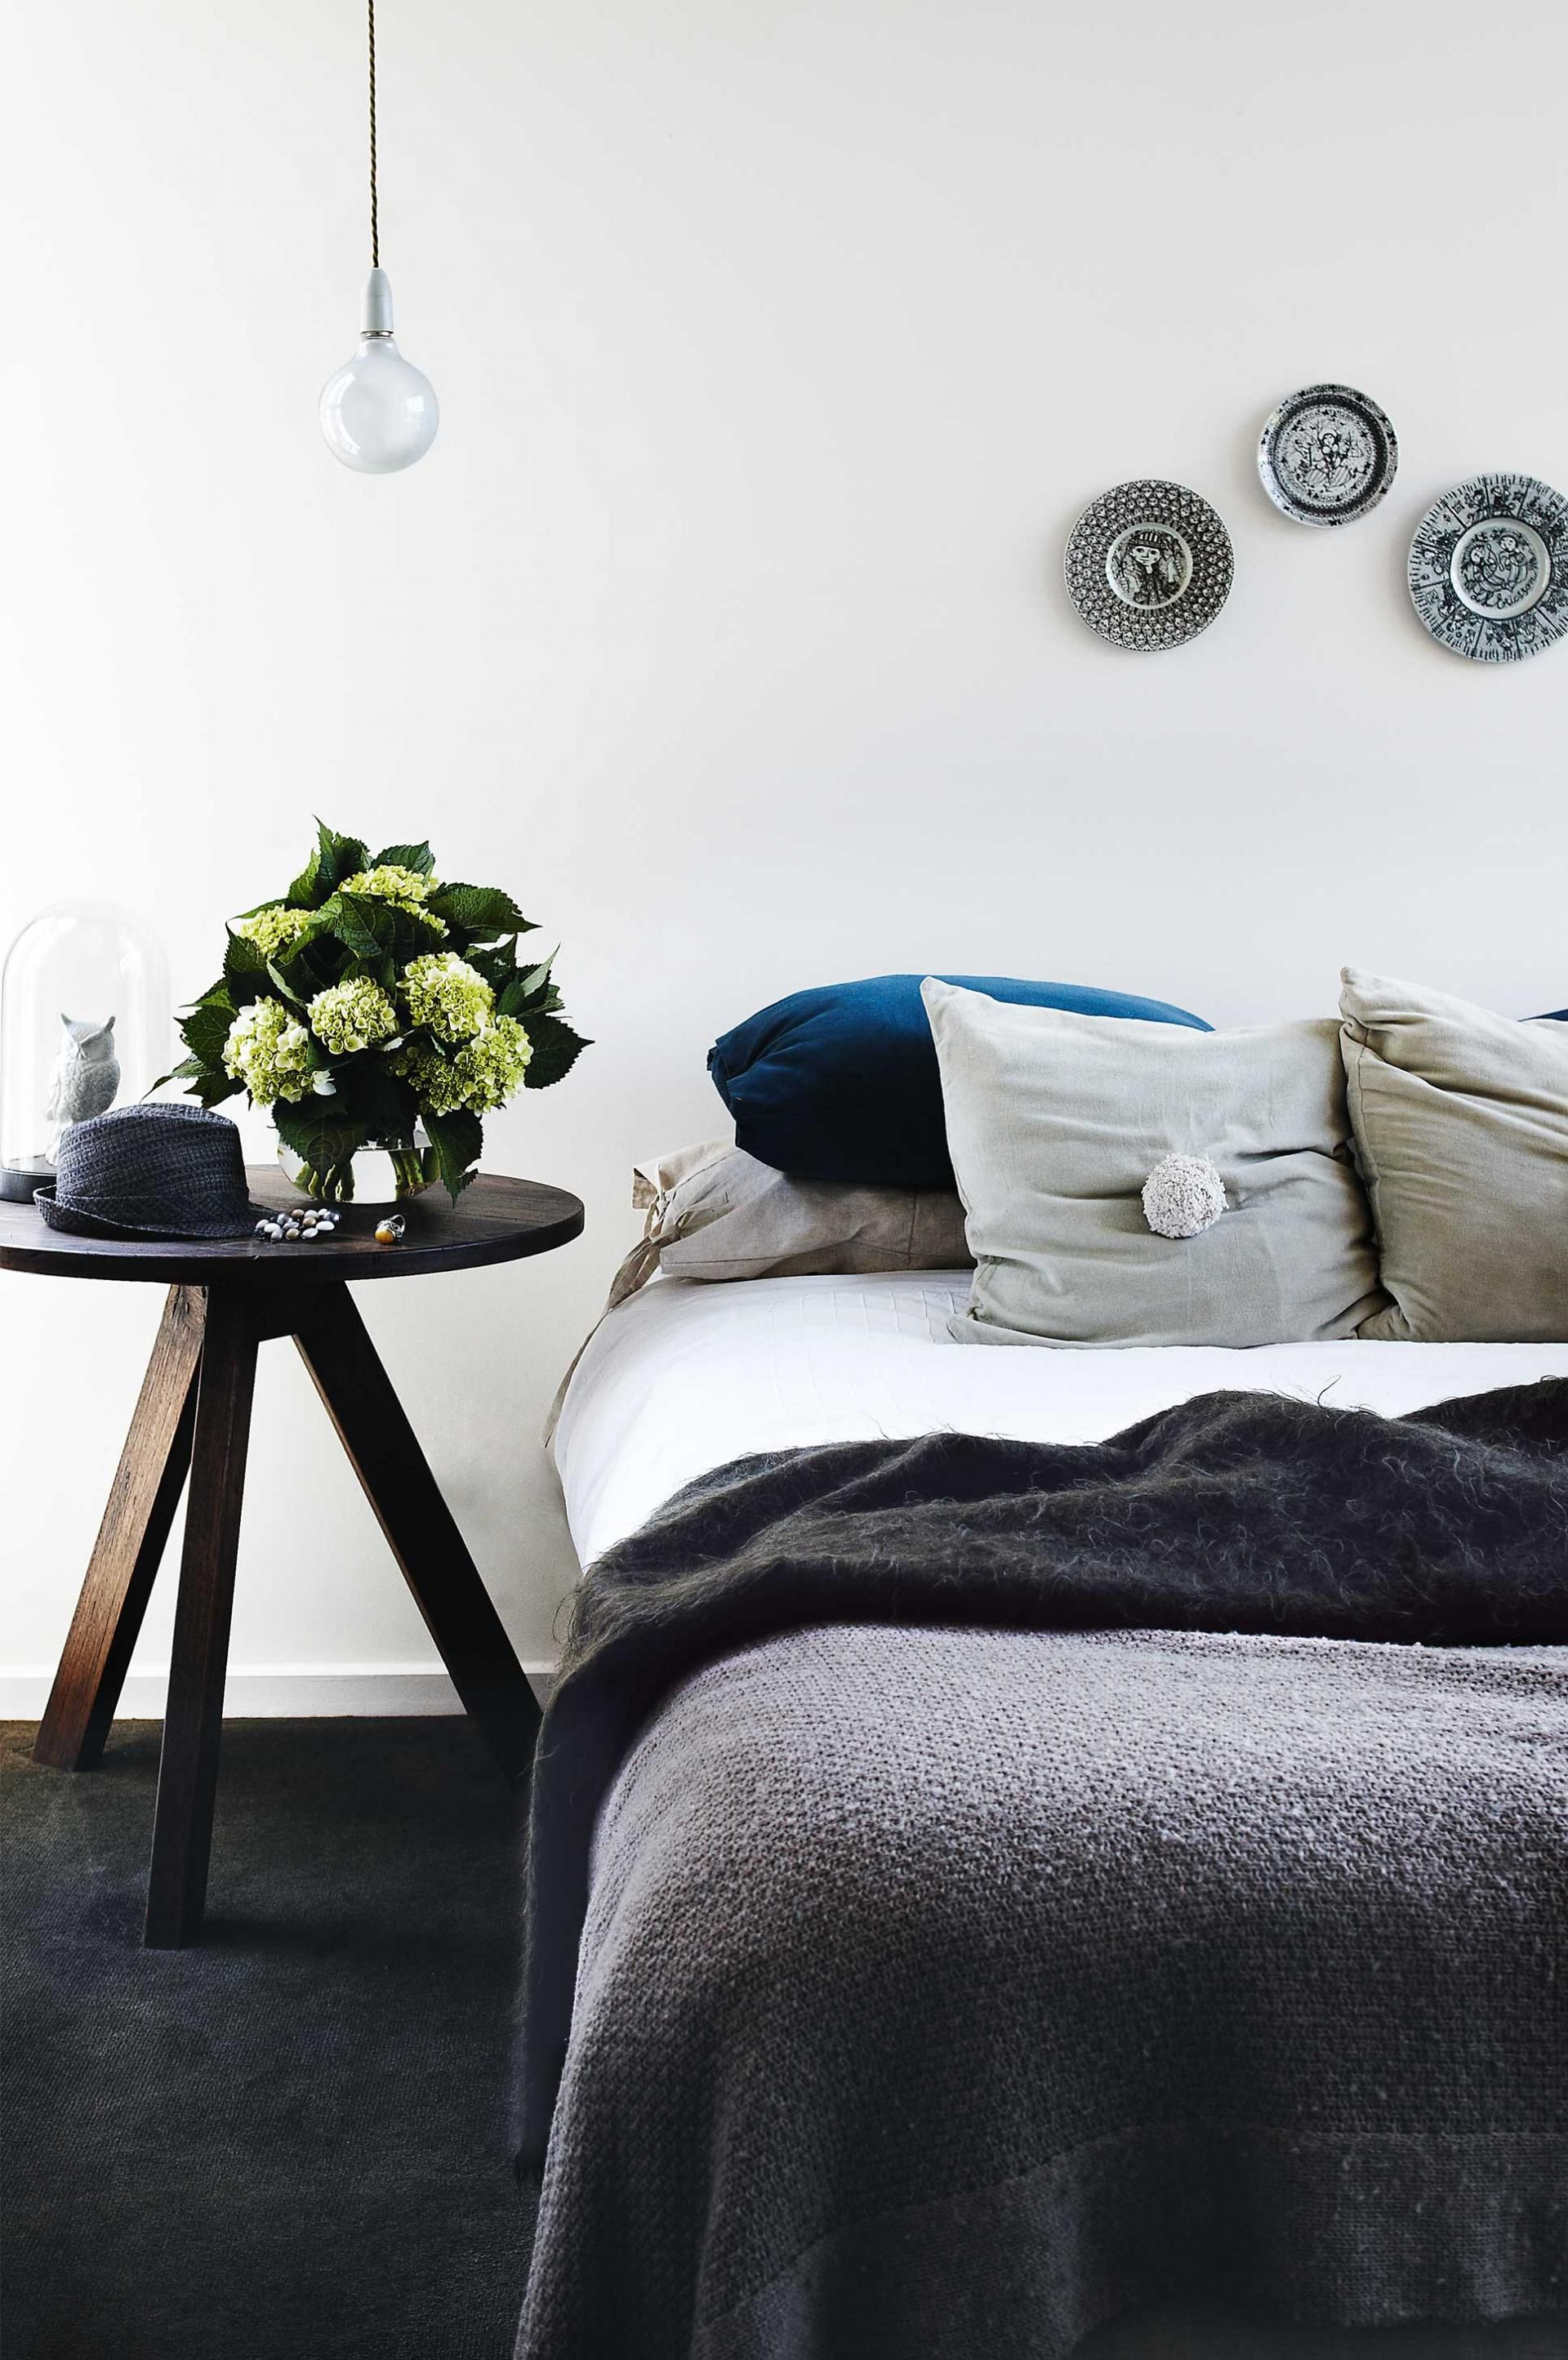 Master bedroom wardrobe designs inside  Cosy bedrooms for a good nightus sleep Styling by mrjasongrant